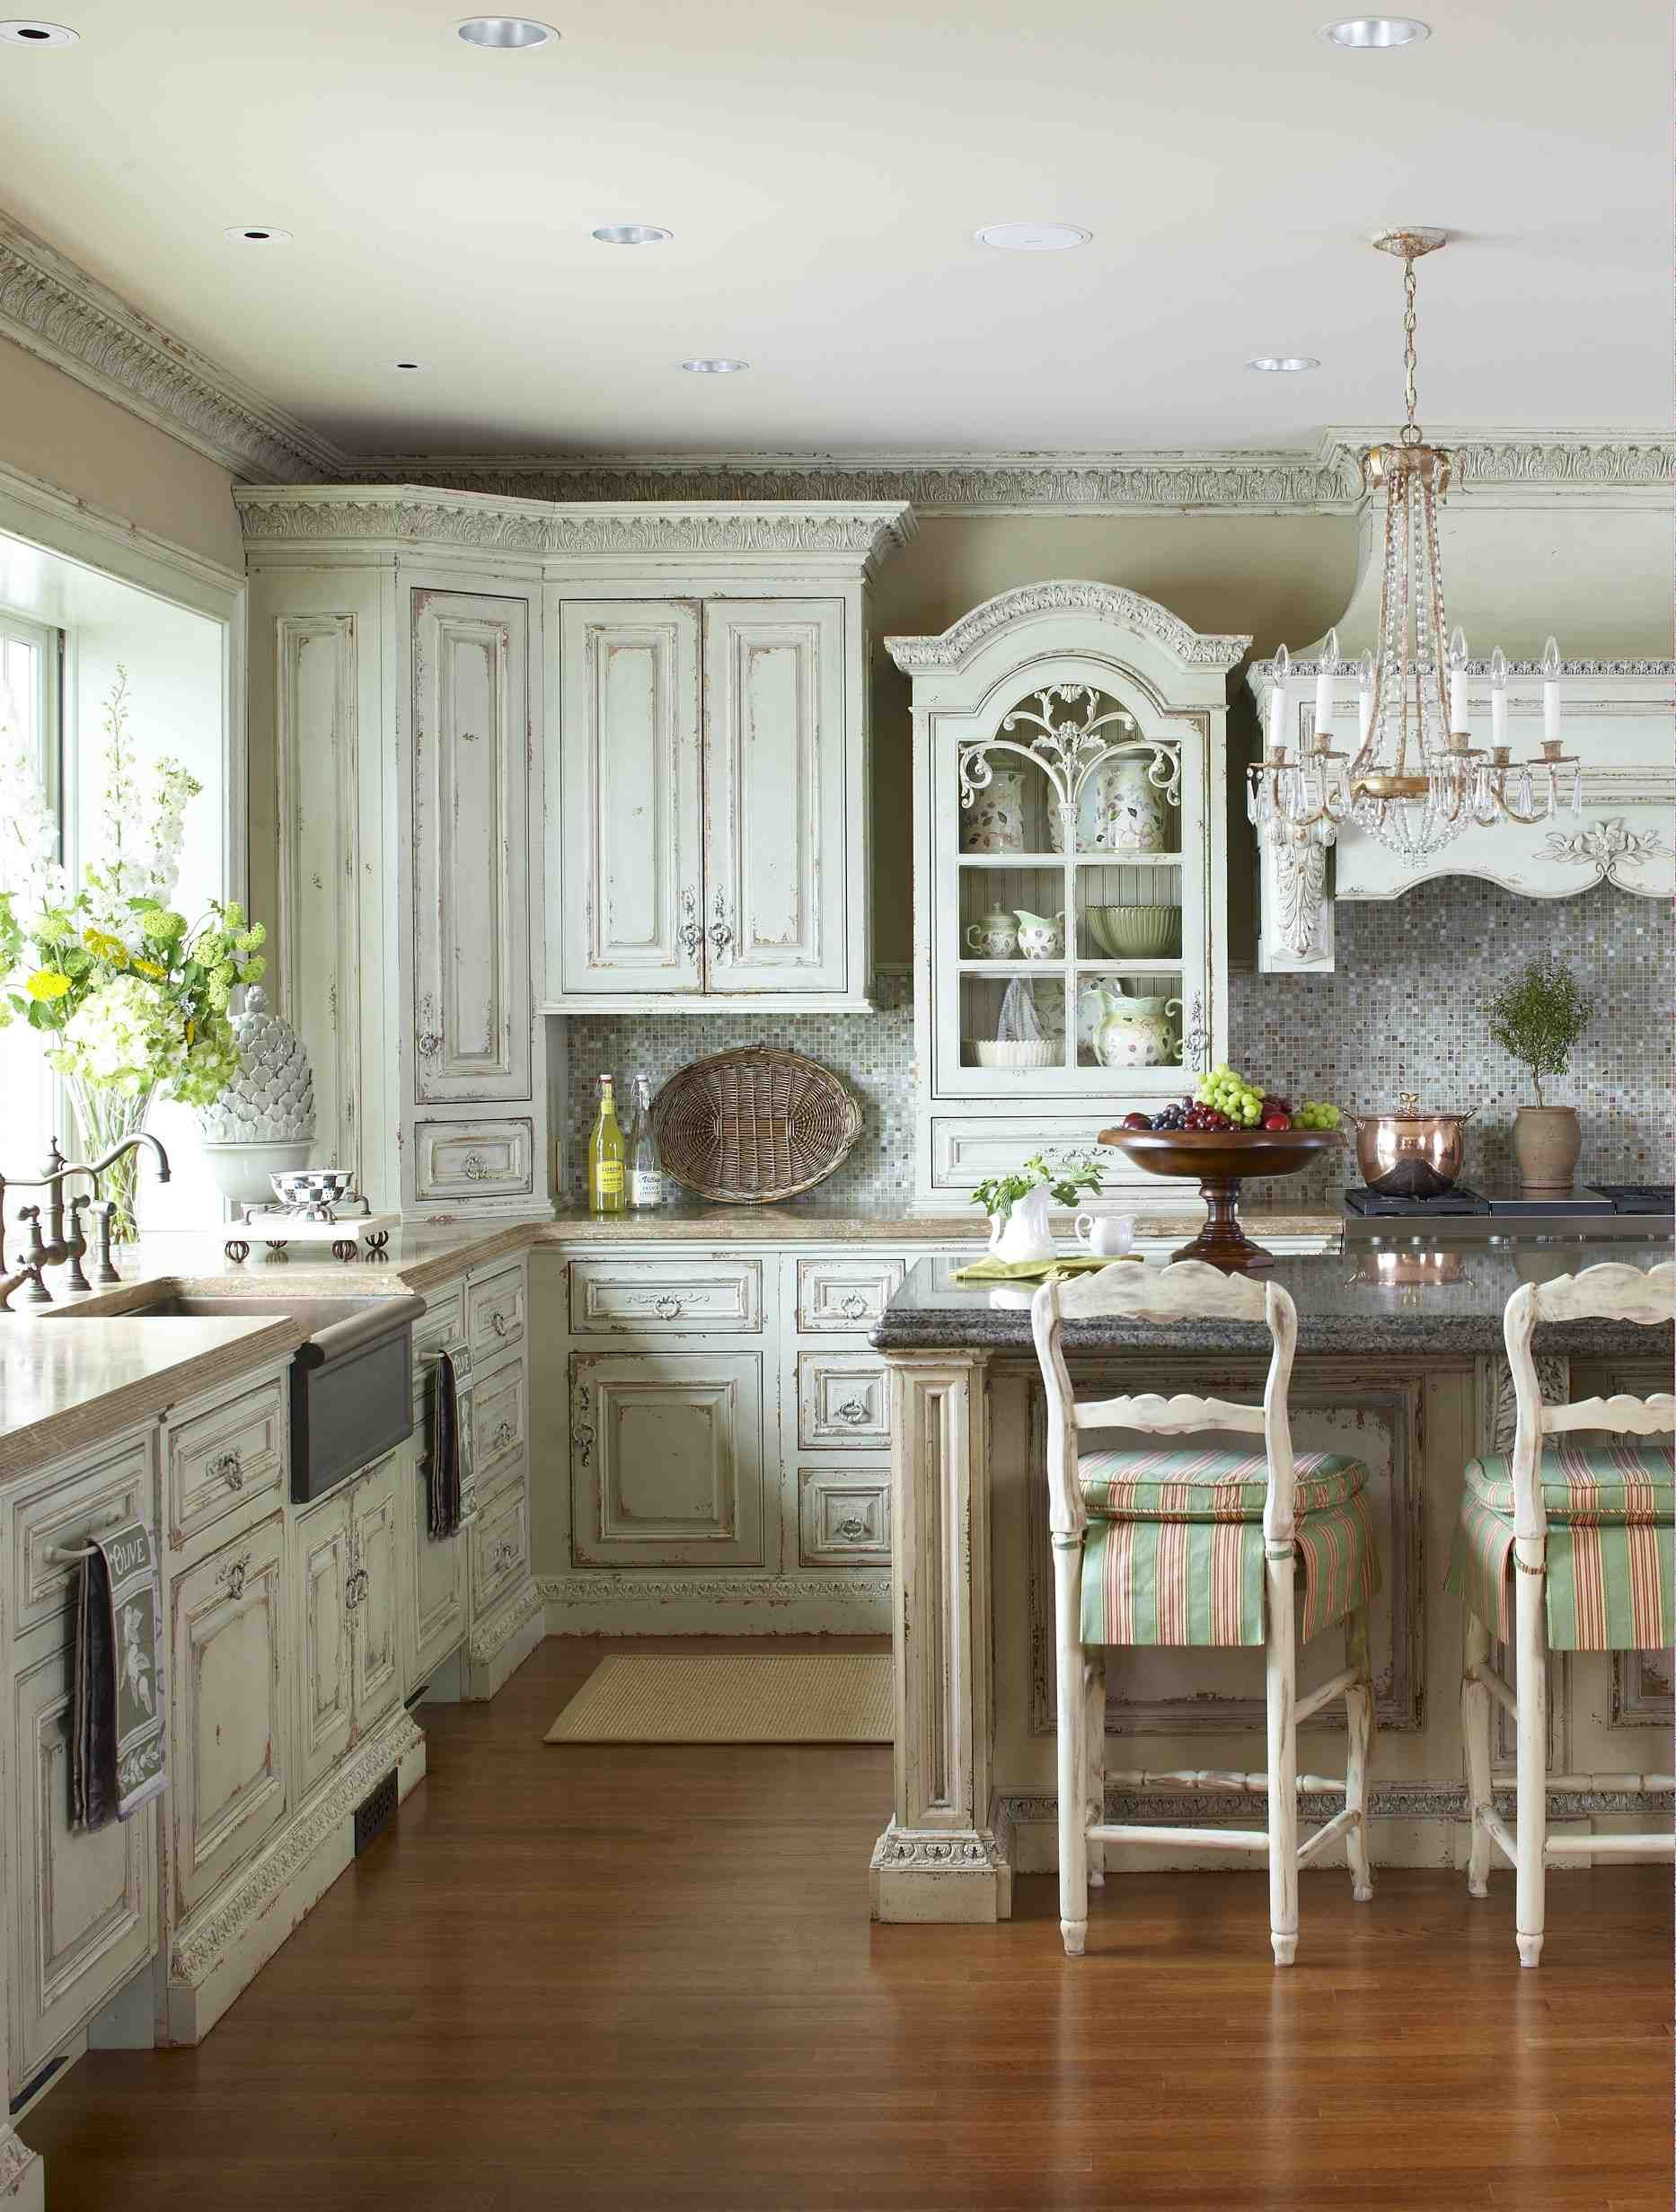 How to Style Your French Shabby Kitchen